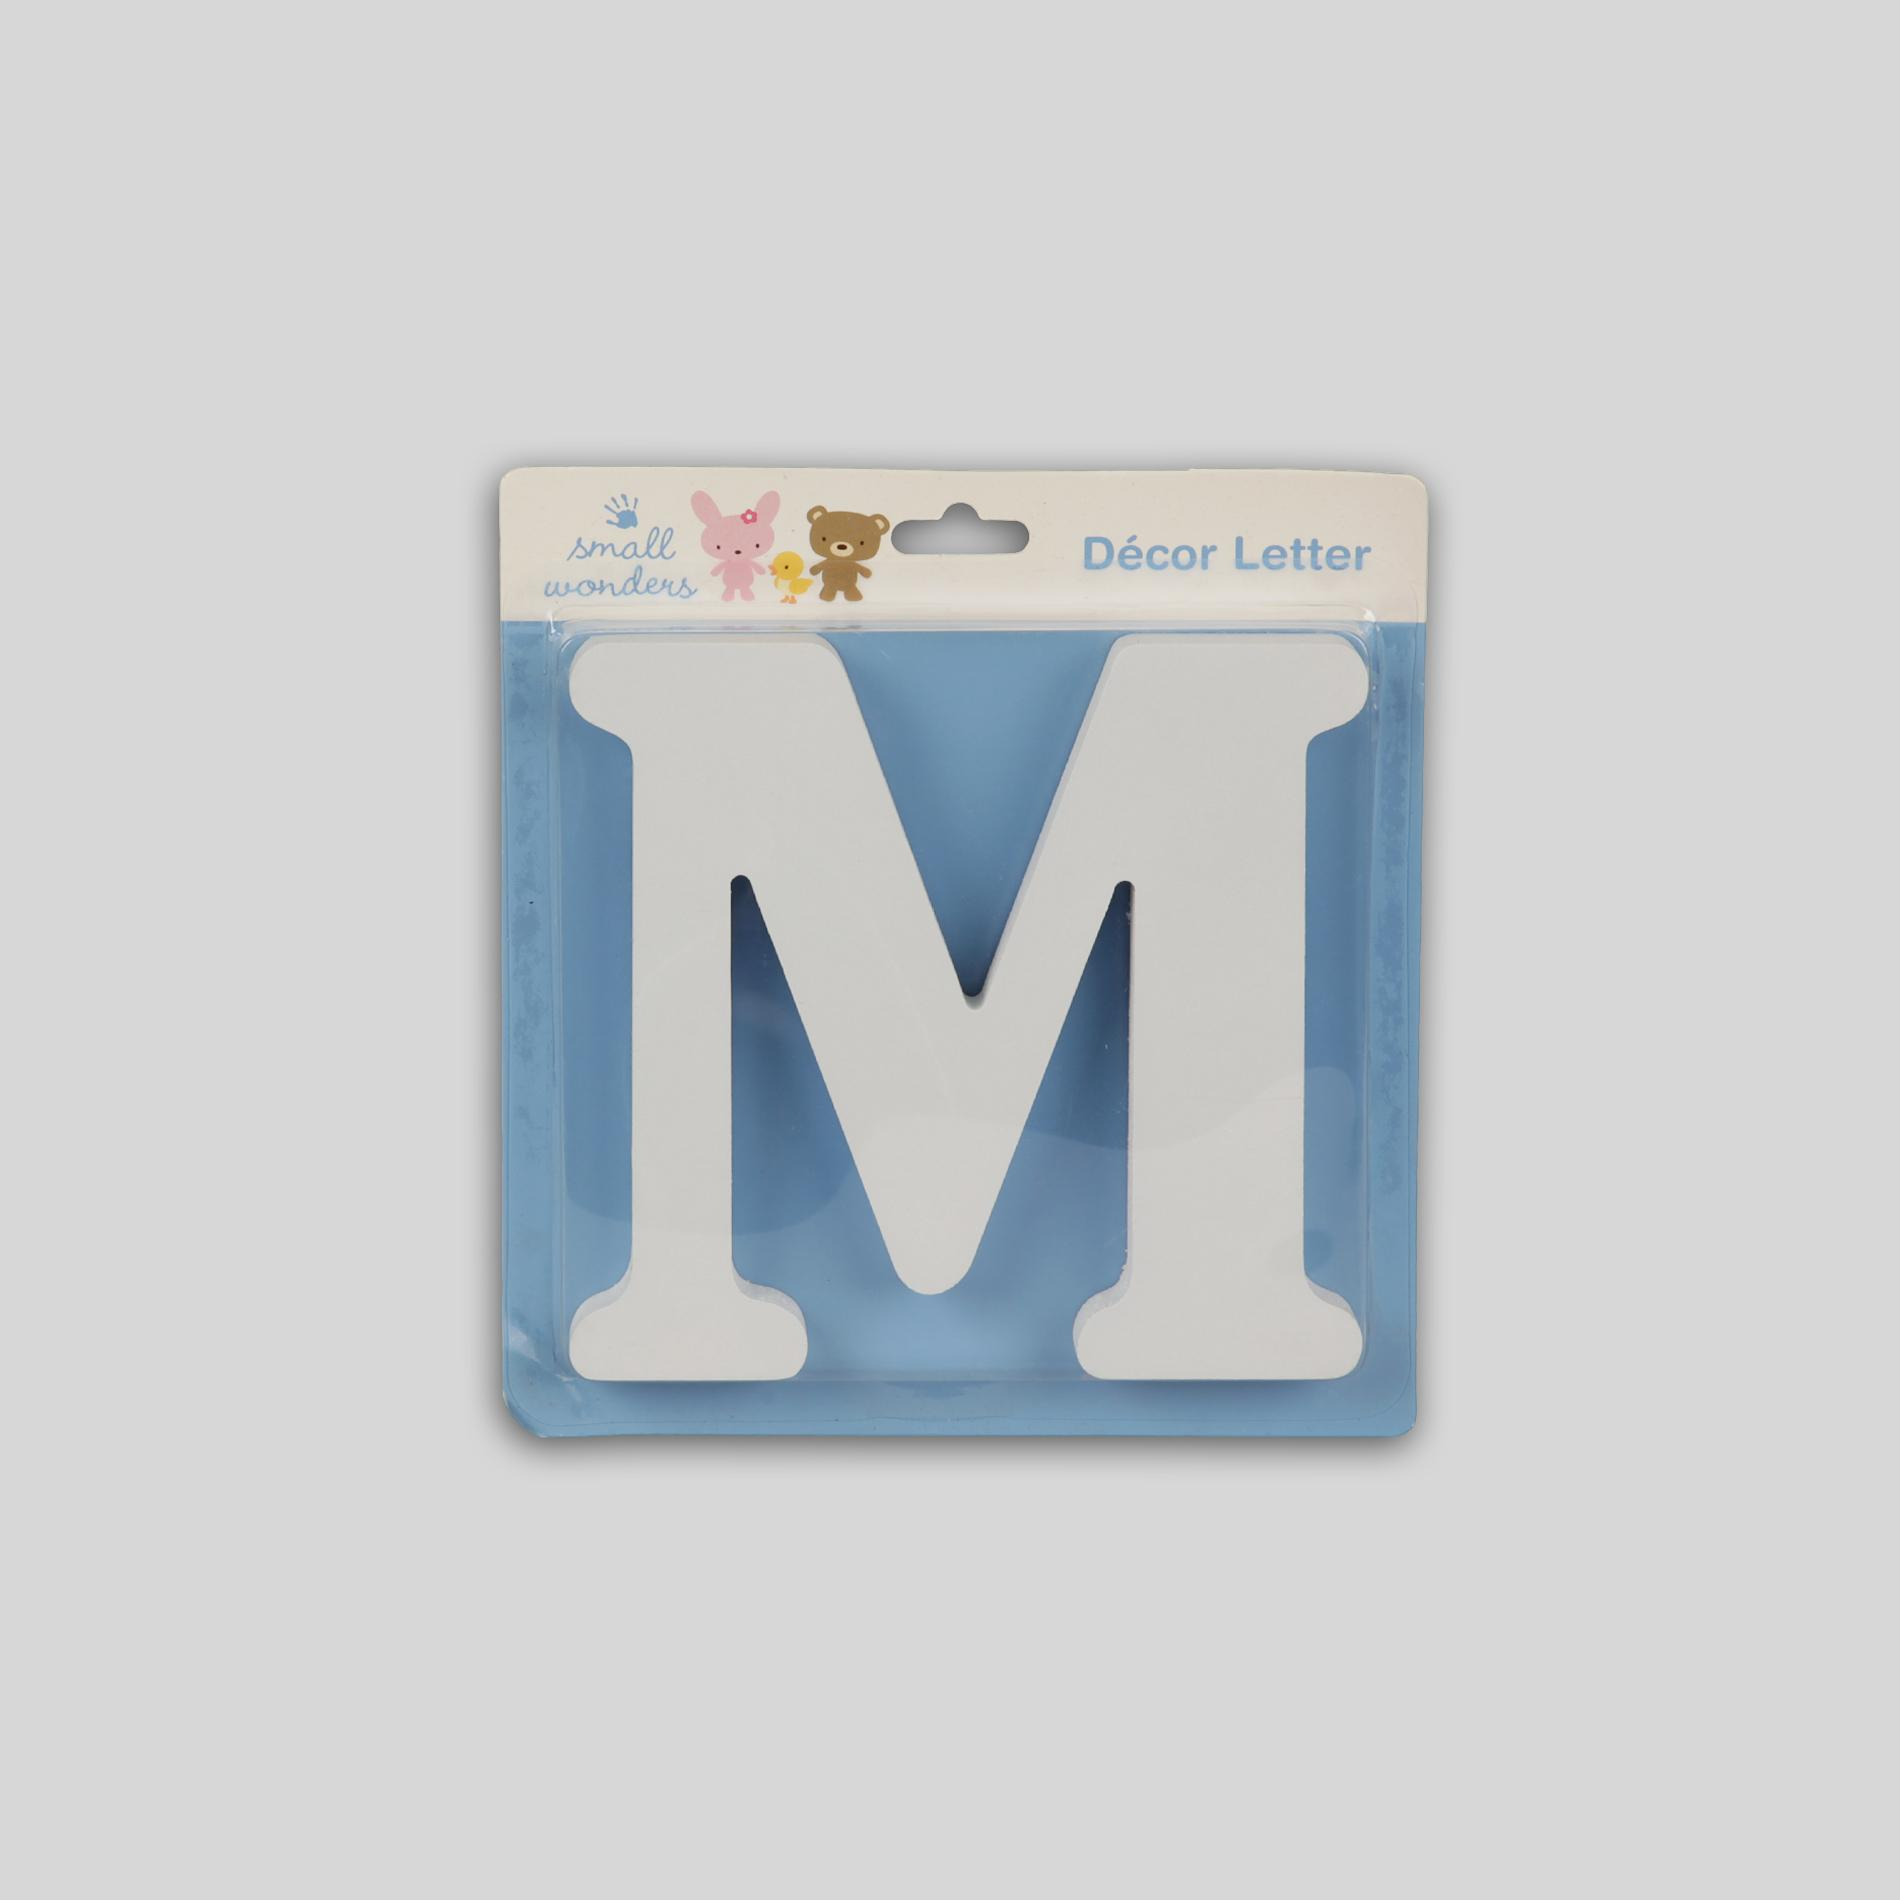 Small Wonders Wooden Letter Wall Decor - Letter M